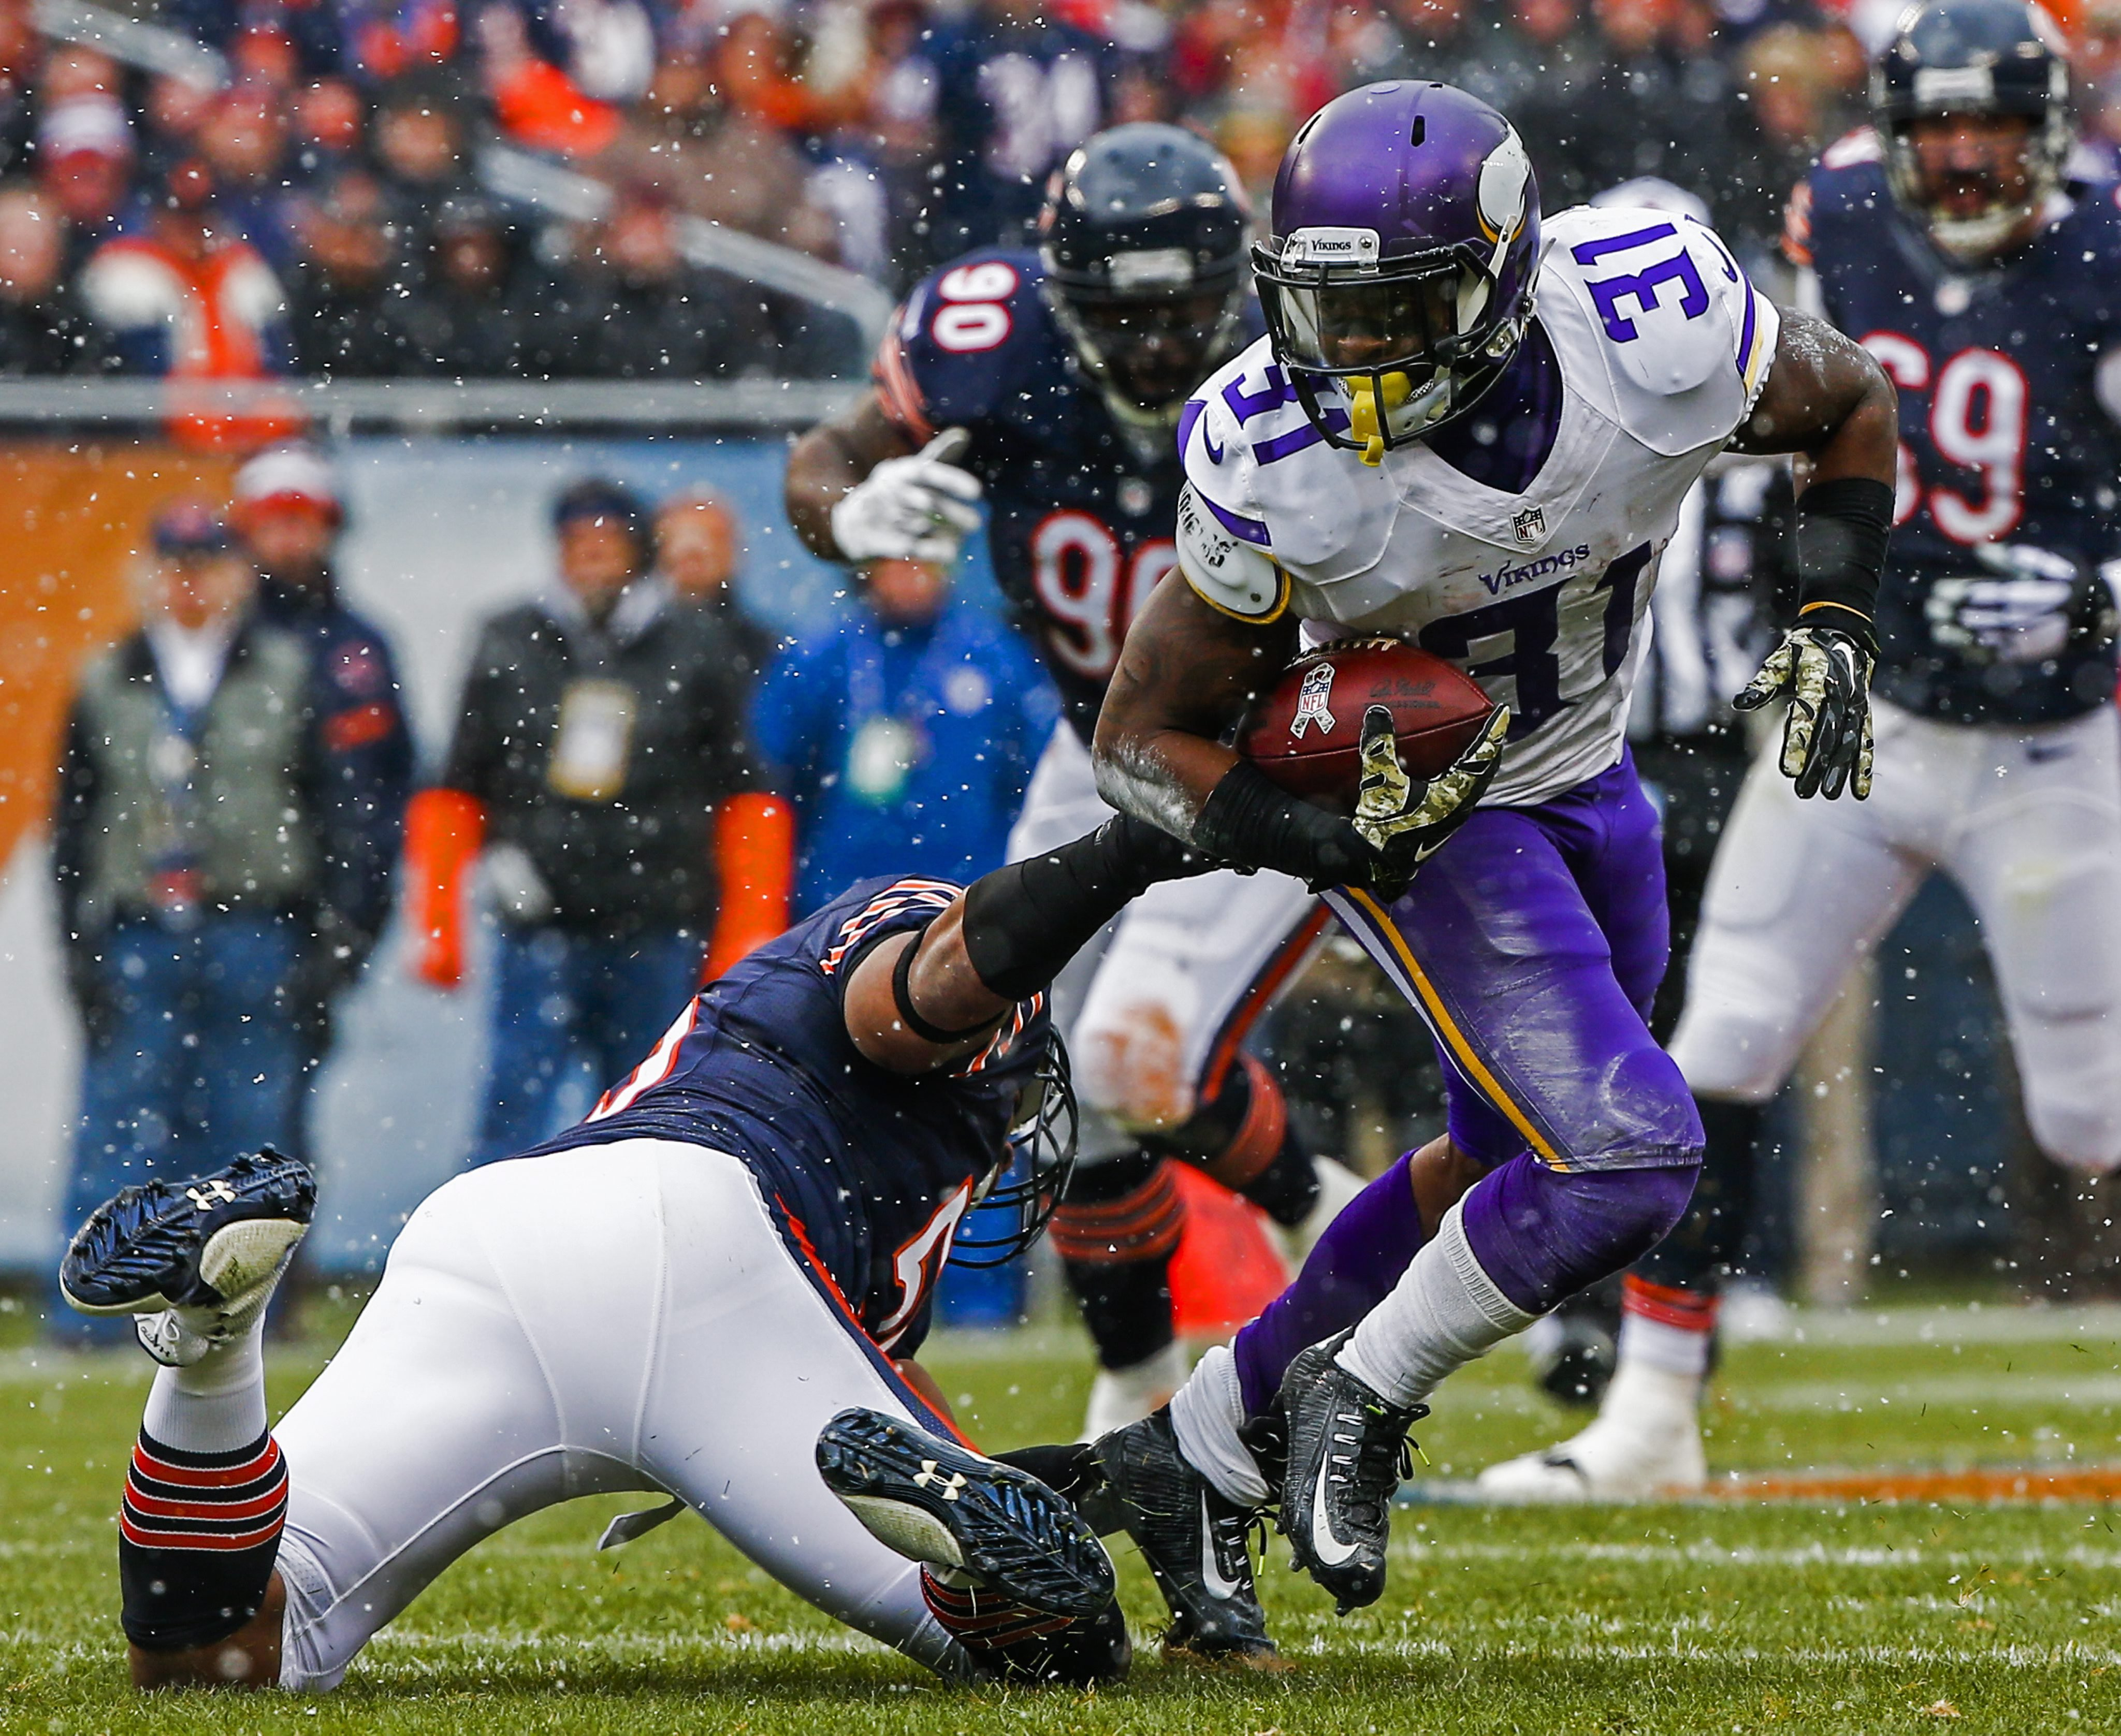 Minnesota Vikings offensive player Jerick McKinnon breaks away from Chicago Bears defensive player Lance Briggs as snow falls in the first half of their game at Soldier Field in Chicago on Nov. 16, 2014.